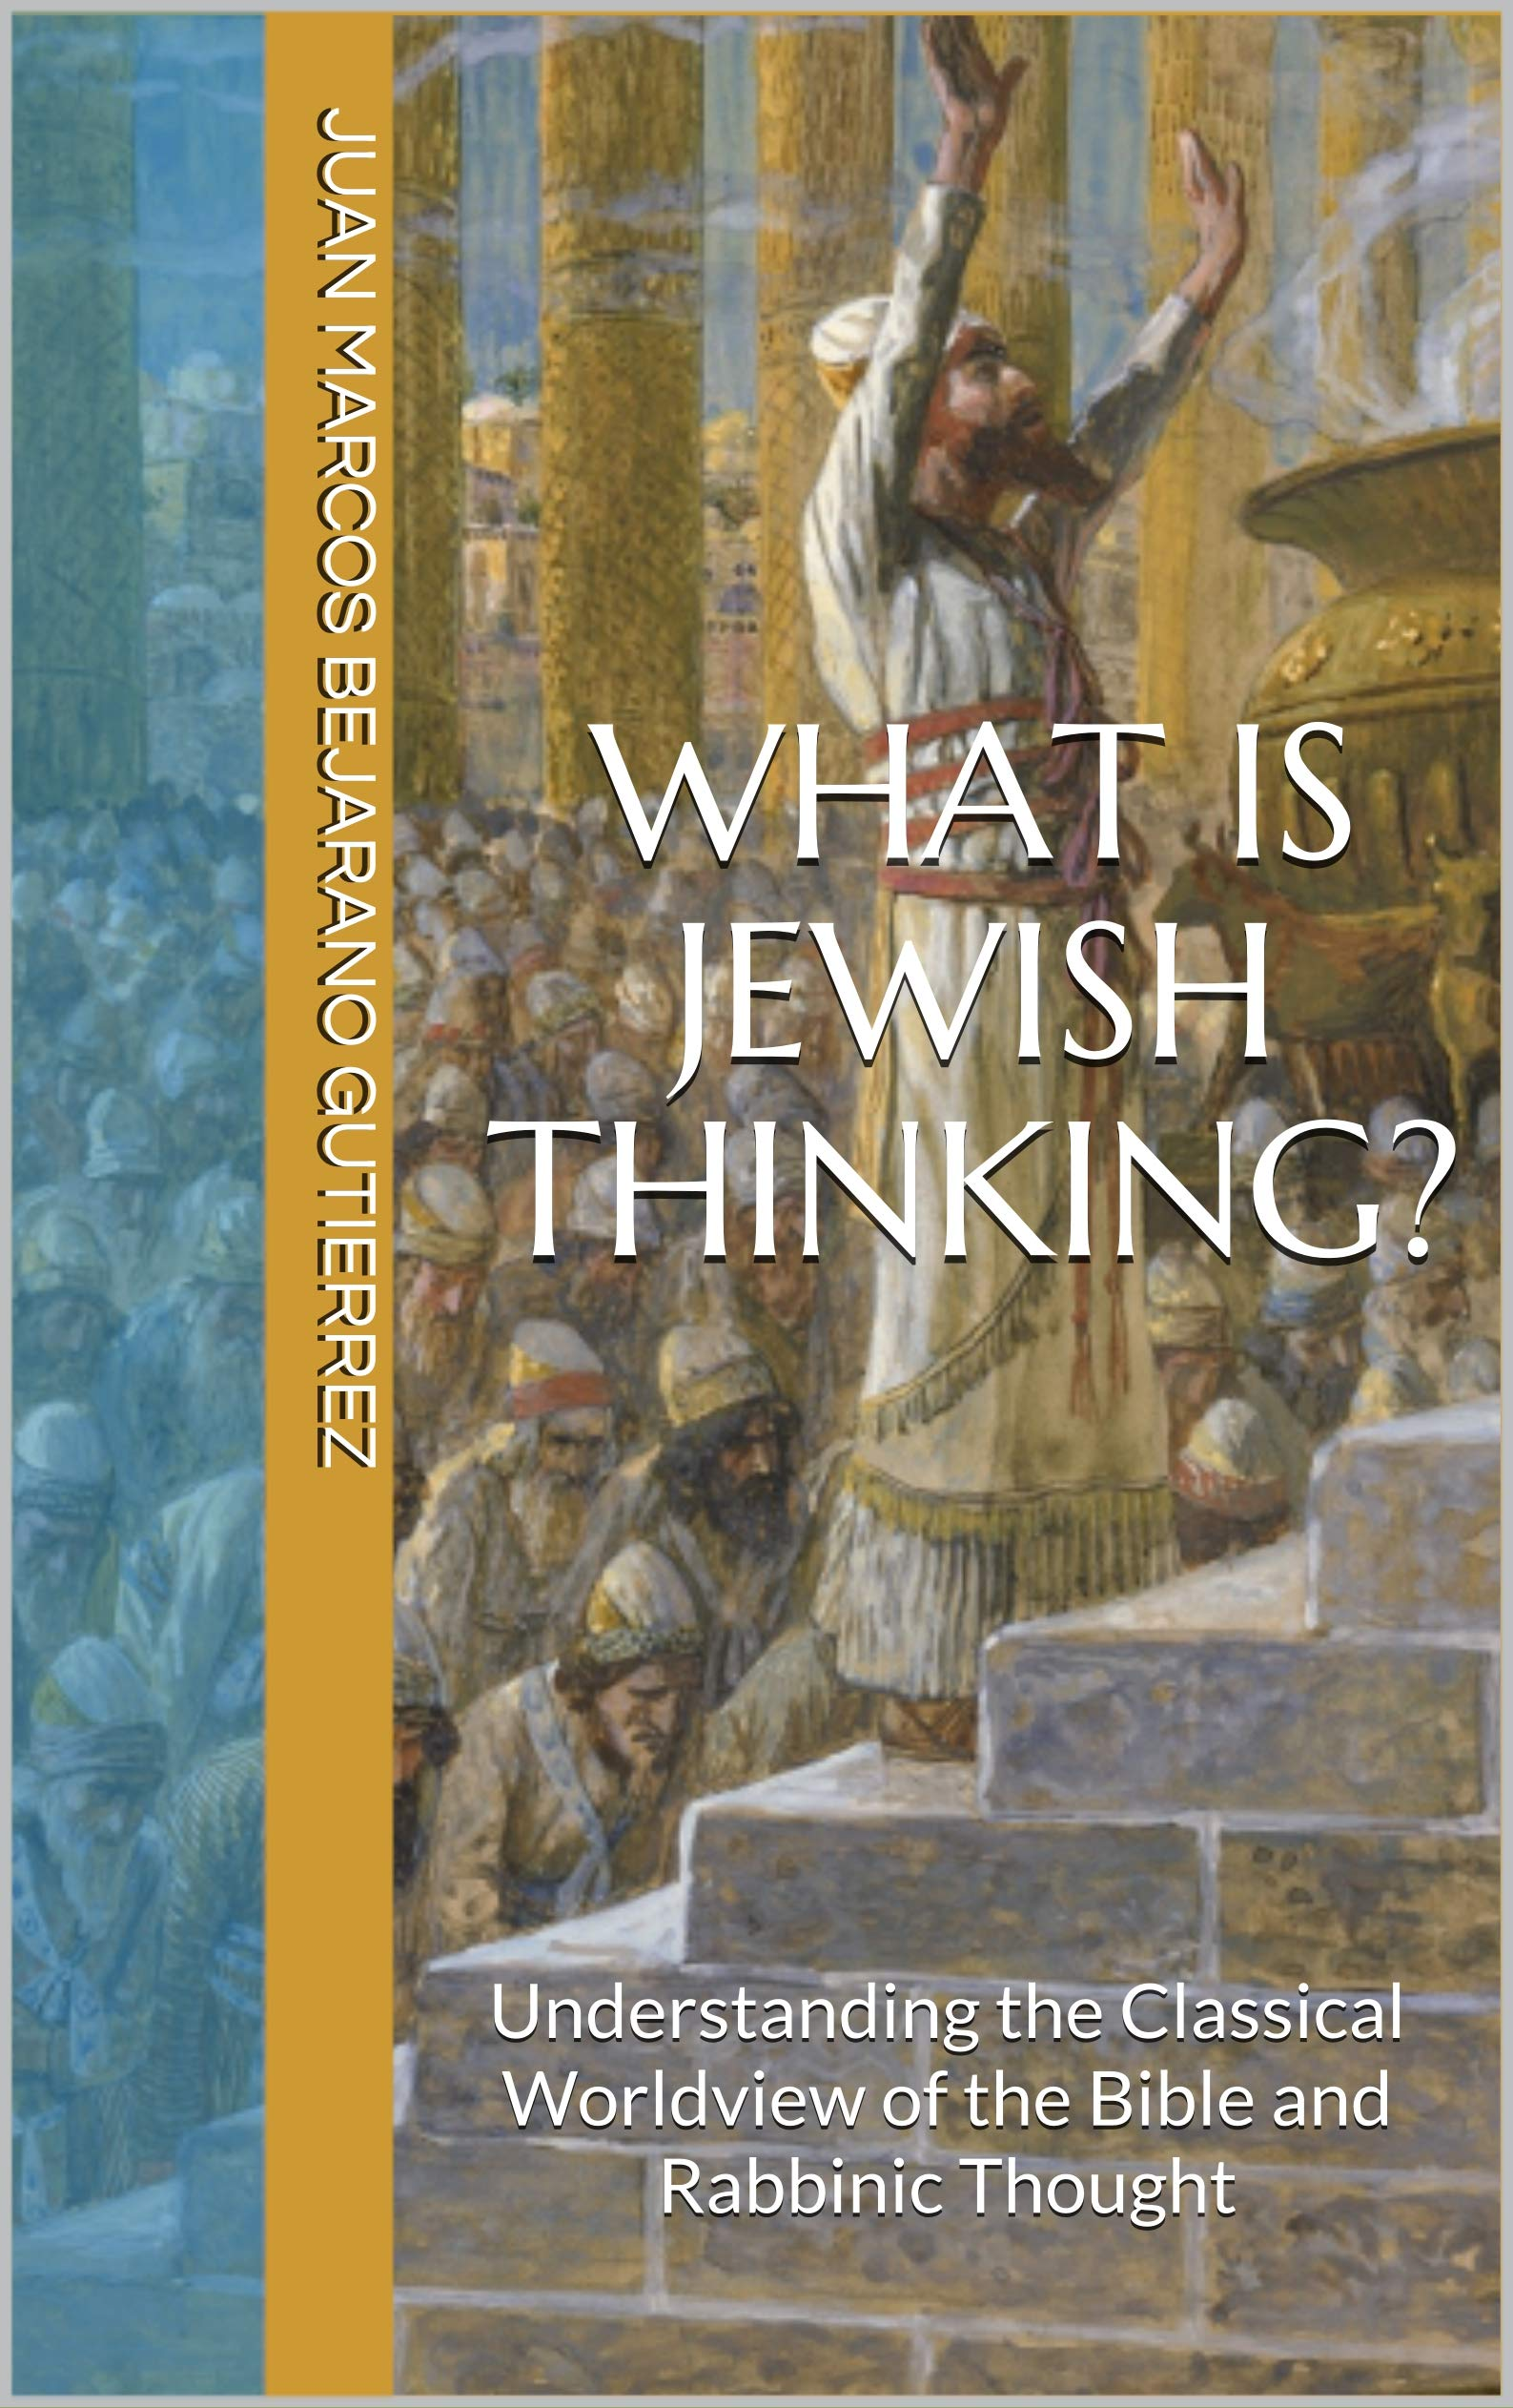 What is Jewish Thinking?: Understanding the Classical Worldview of the Bible and Rabbinic Thought (English Edition)